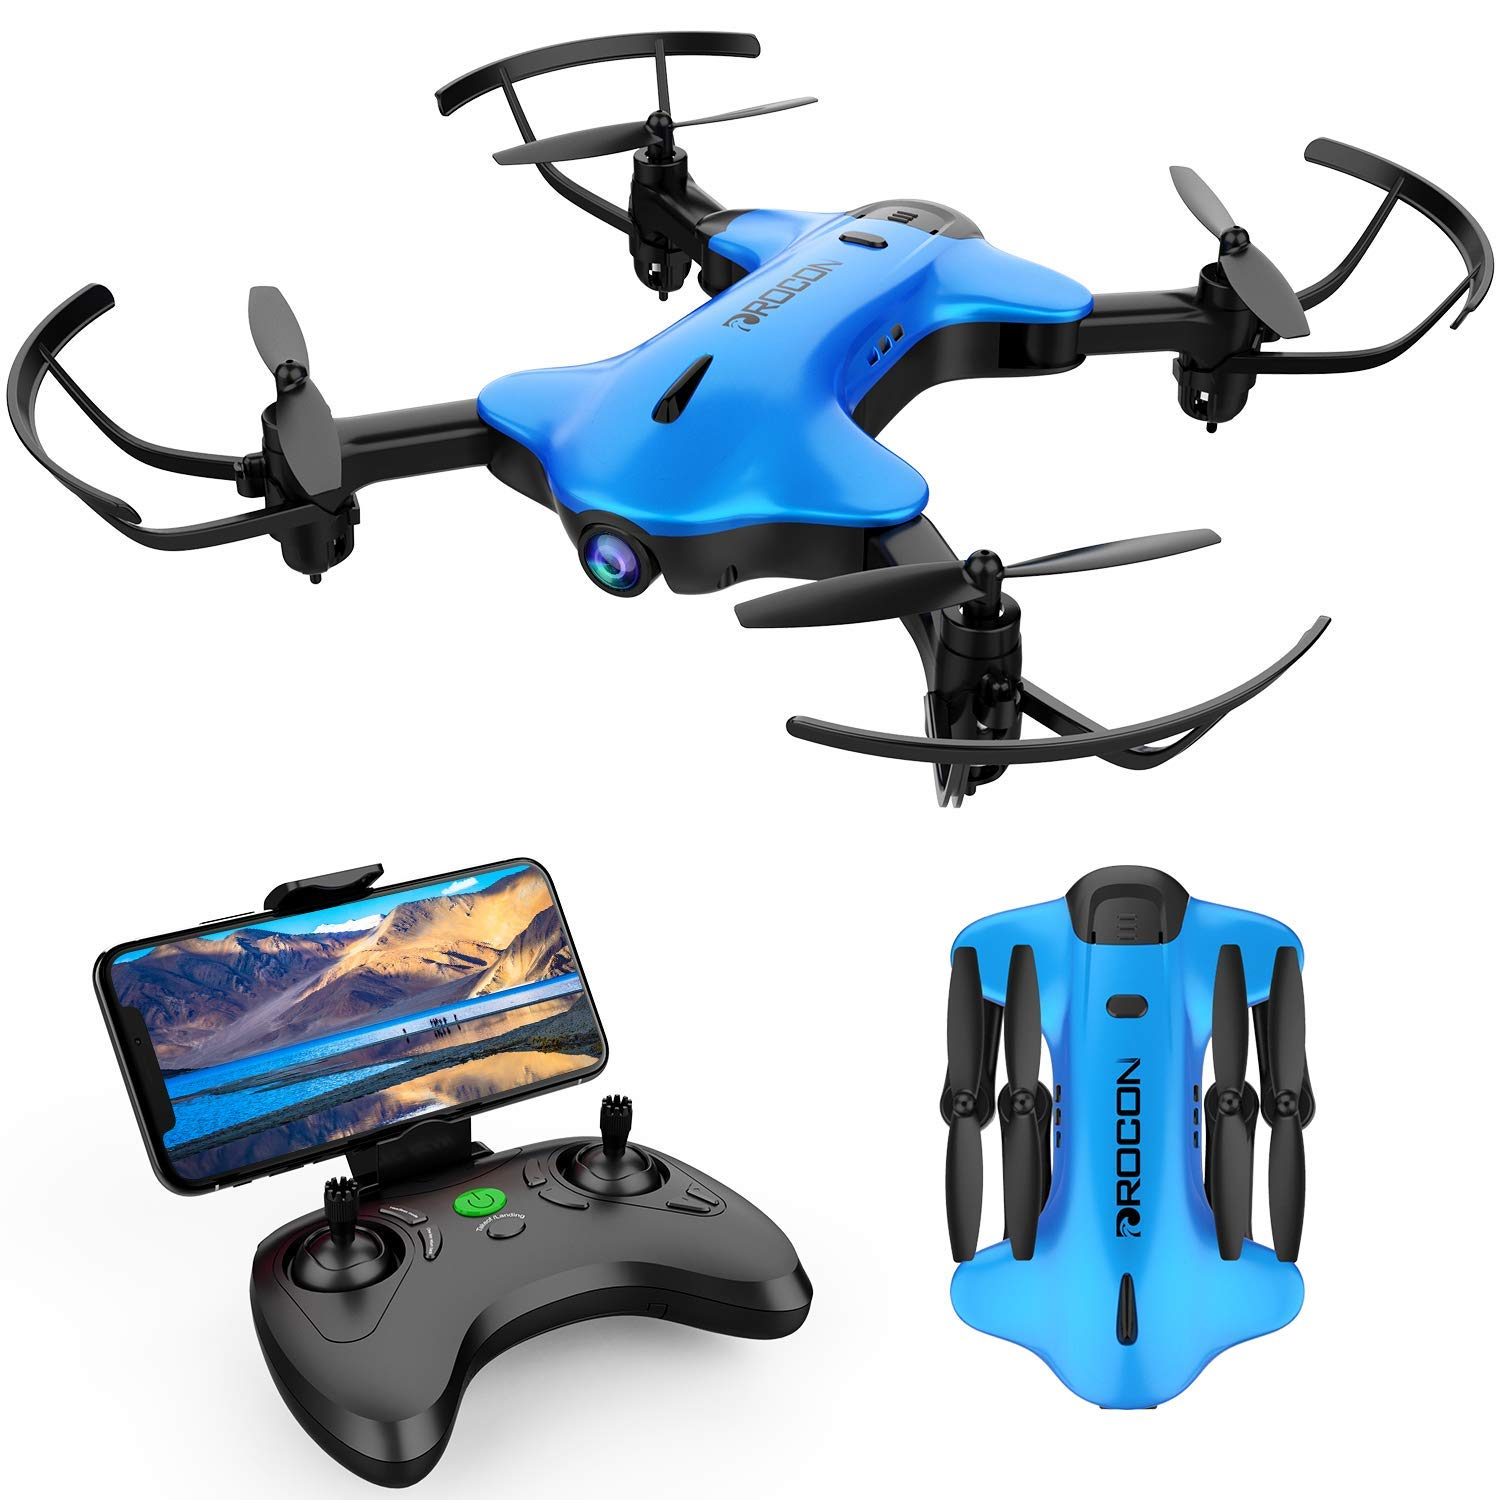 DROCON Ninja Drone for Kids & Beginners FPV RC Drone with 720P HD Wi-Fi Camera,Quadcopter Drone with Altitude Hold, Headless Mode, Foldable Arms, One Key take Off/Landing, Blue by DROCON